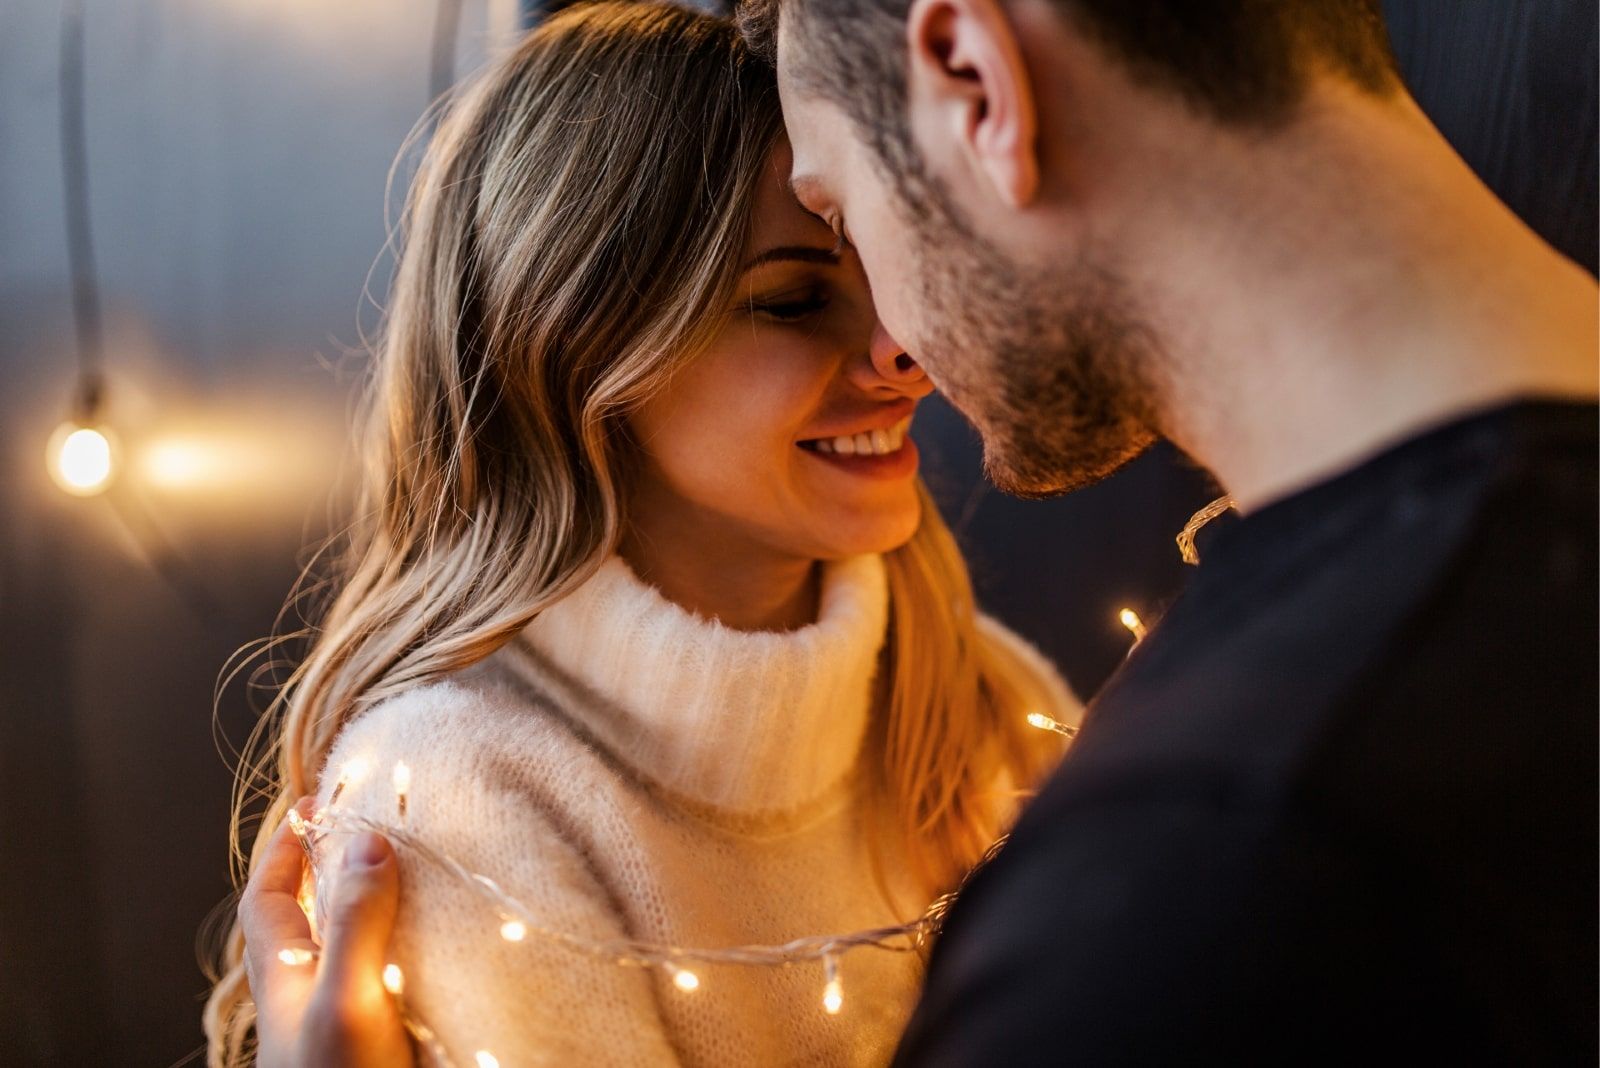 happy woman in white turtleneck sweater and man hugging indoor